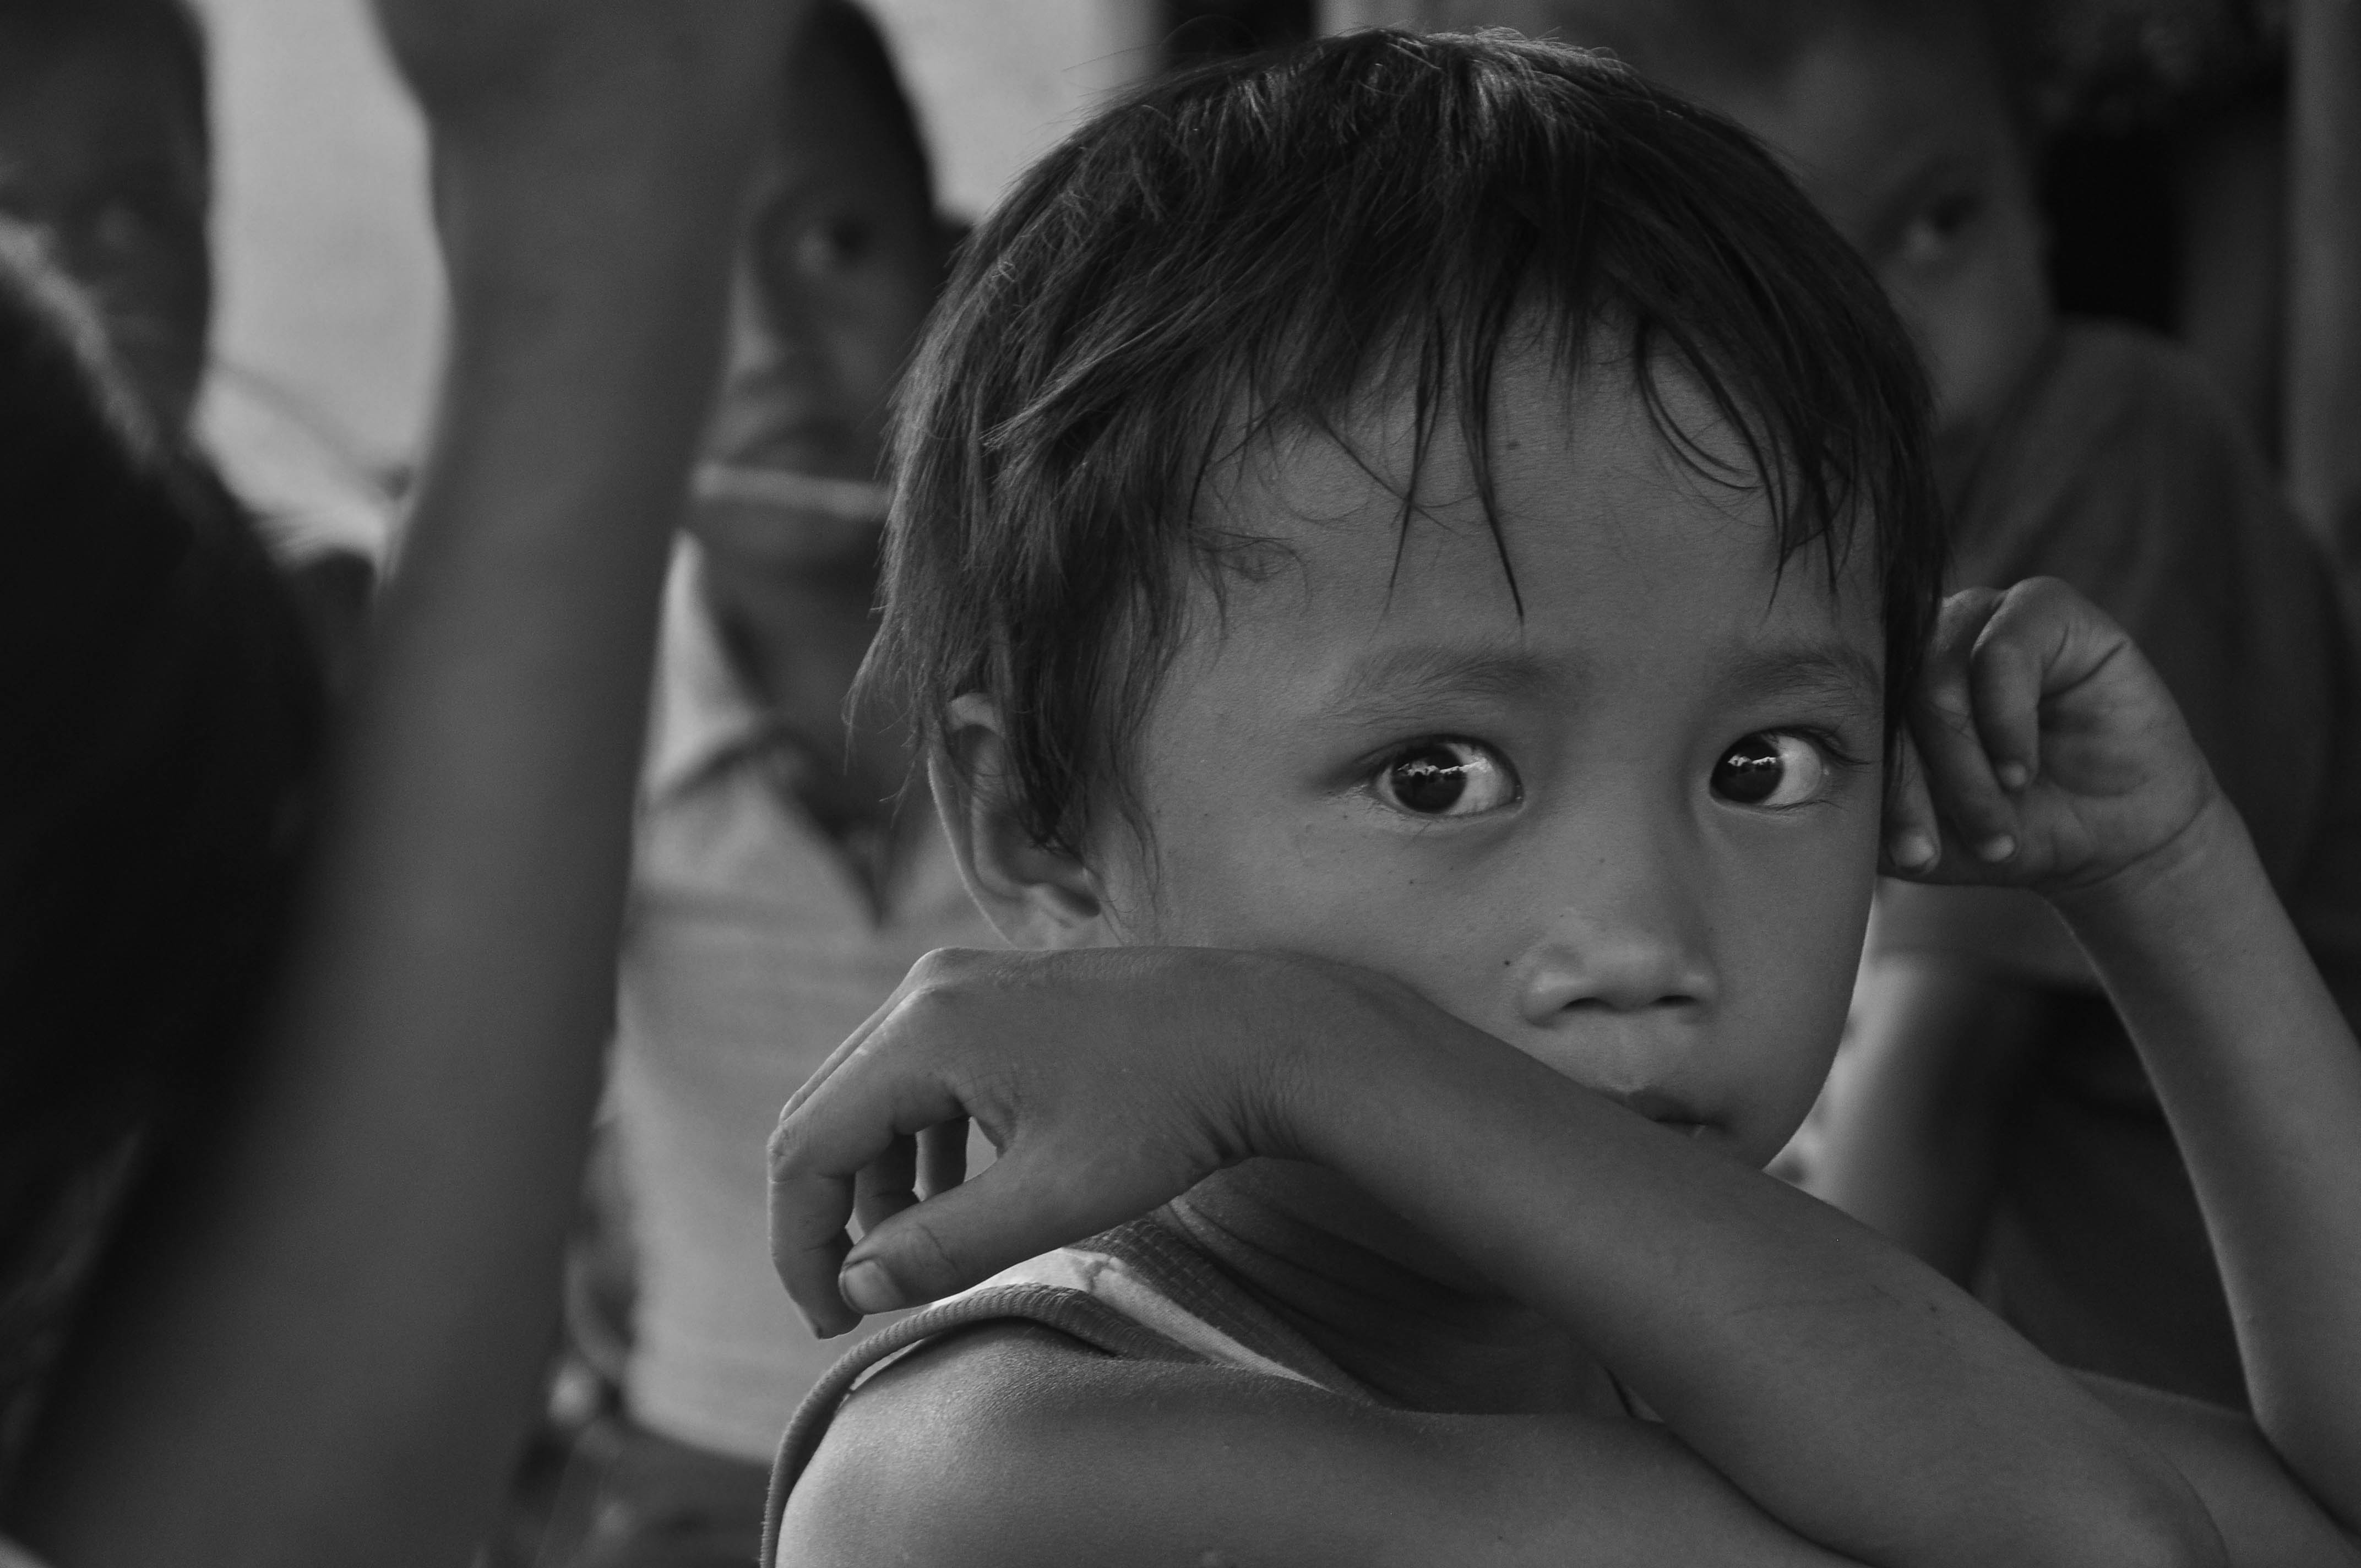 Save the Children condemns the death of any child in relation to the war against illegal drugs